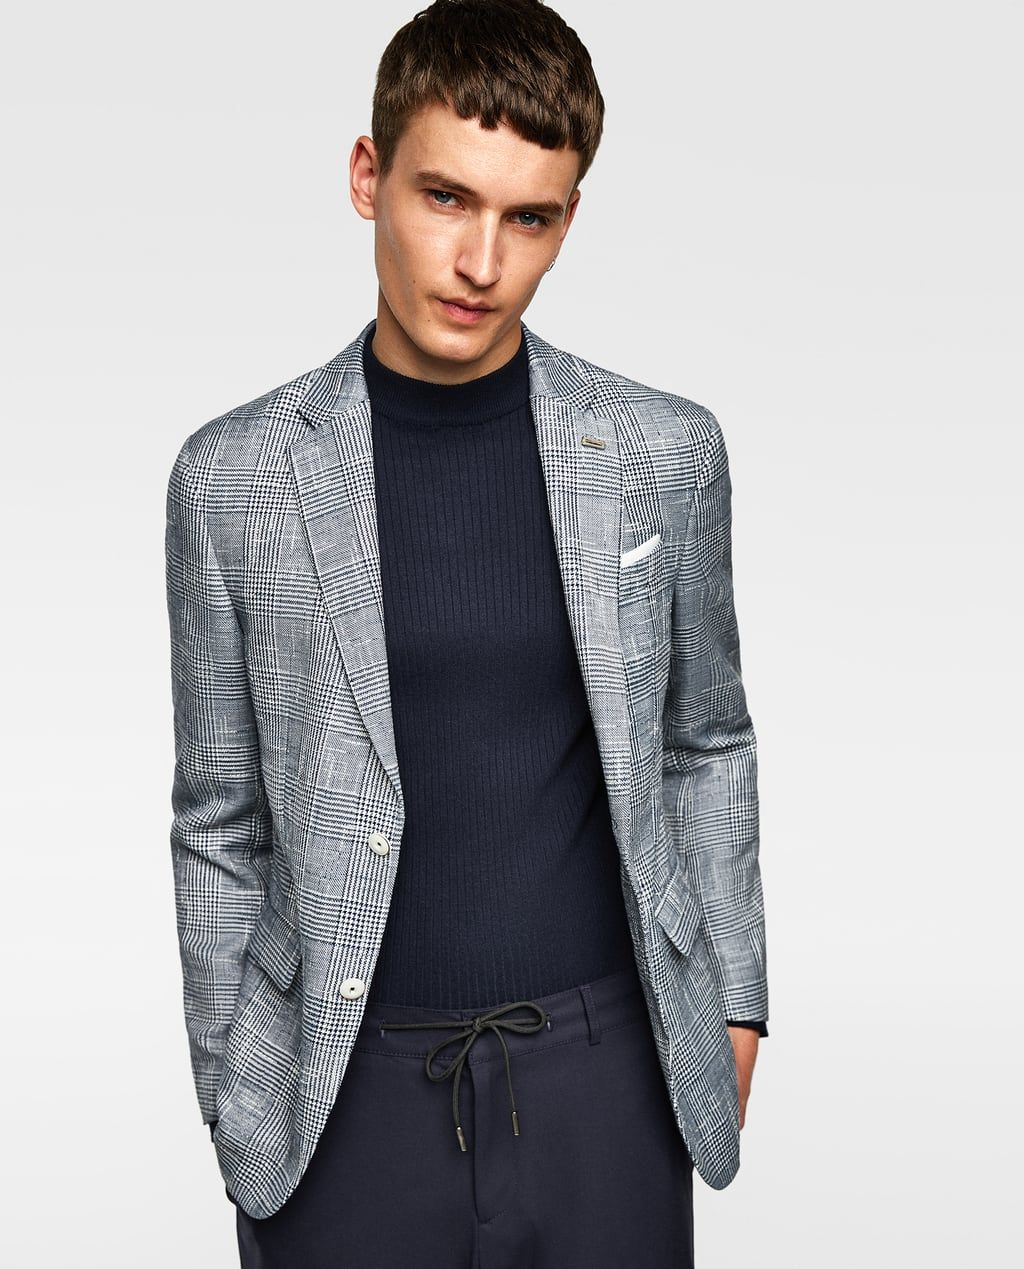 a059a4d045aa CHECKED TEXTURED WEAVE BLAZER | MBMWJT in 2019 | Blazer, Blazers for ...